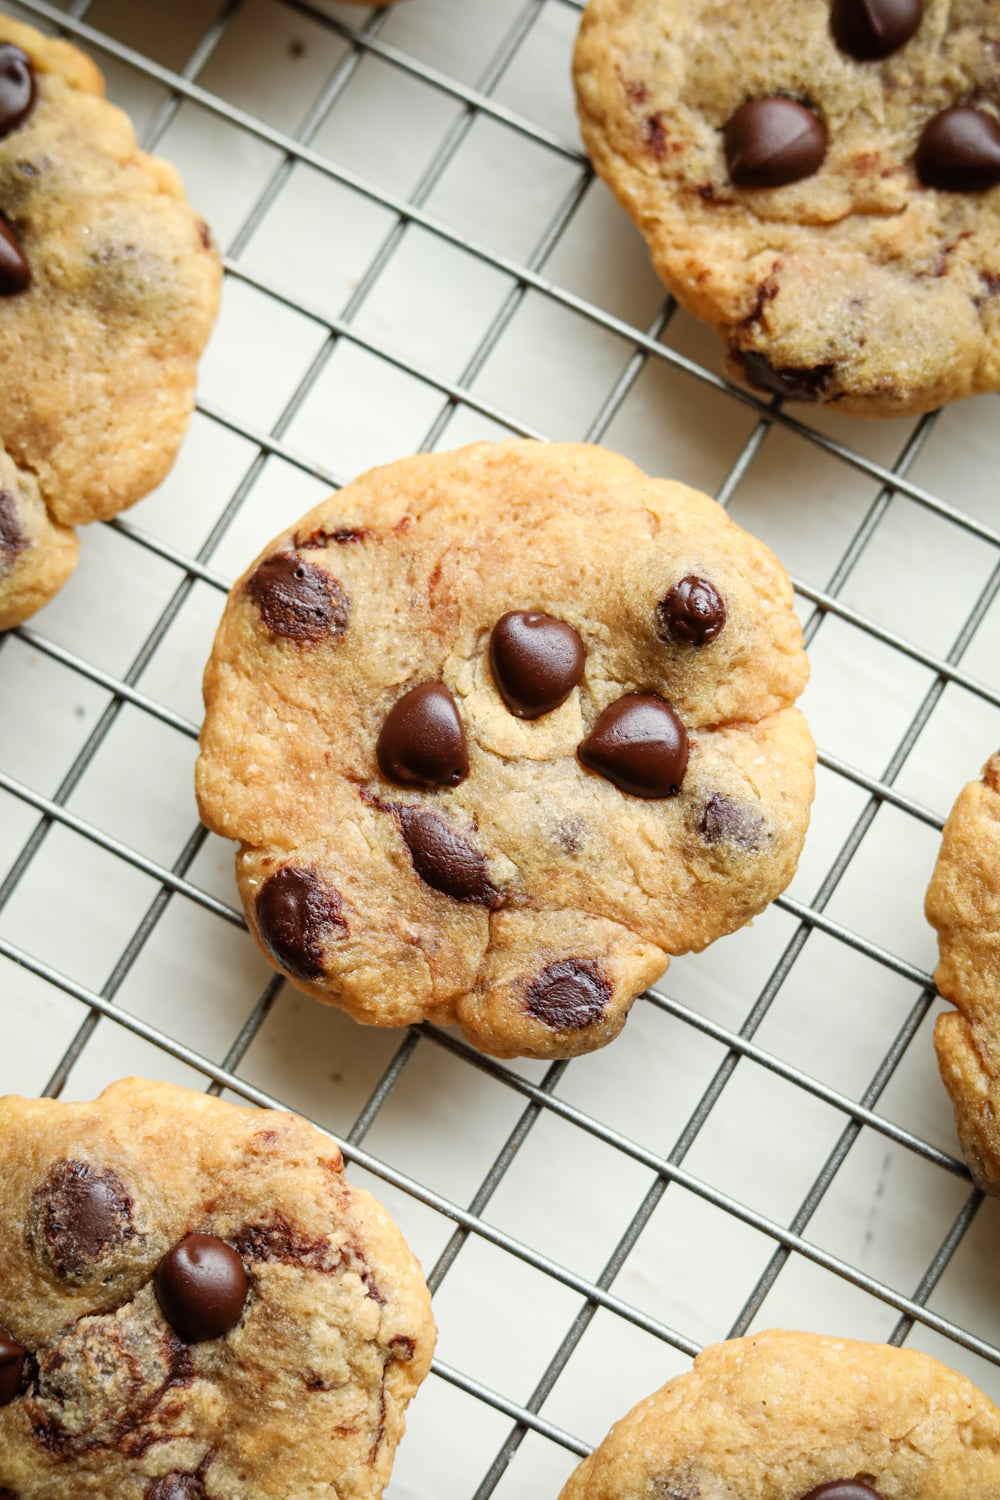 A chocolate chip cookie on a metal wire rack.